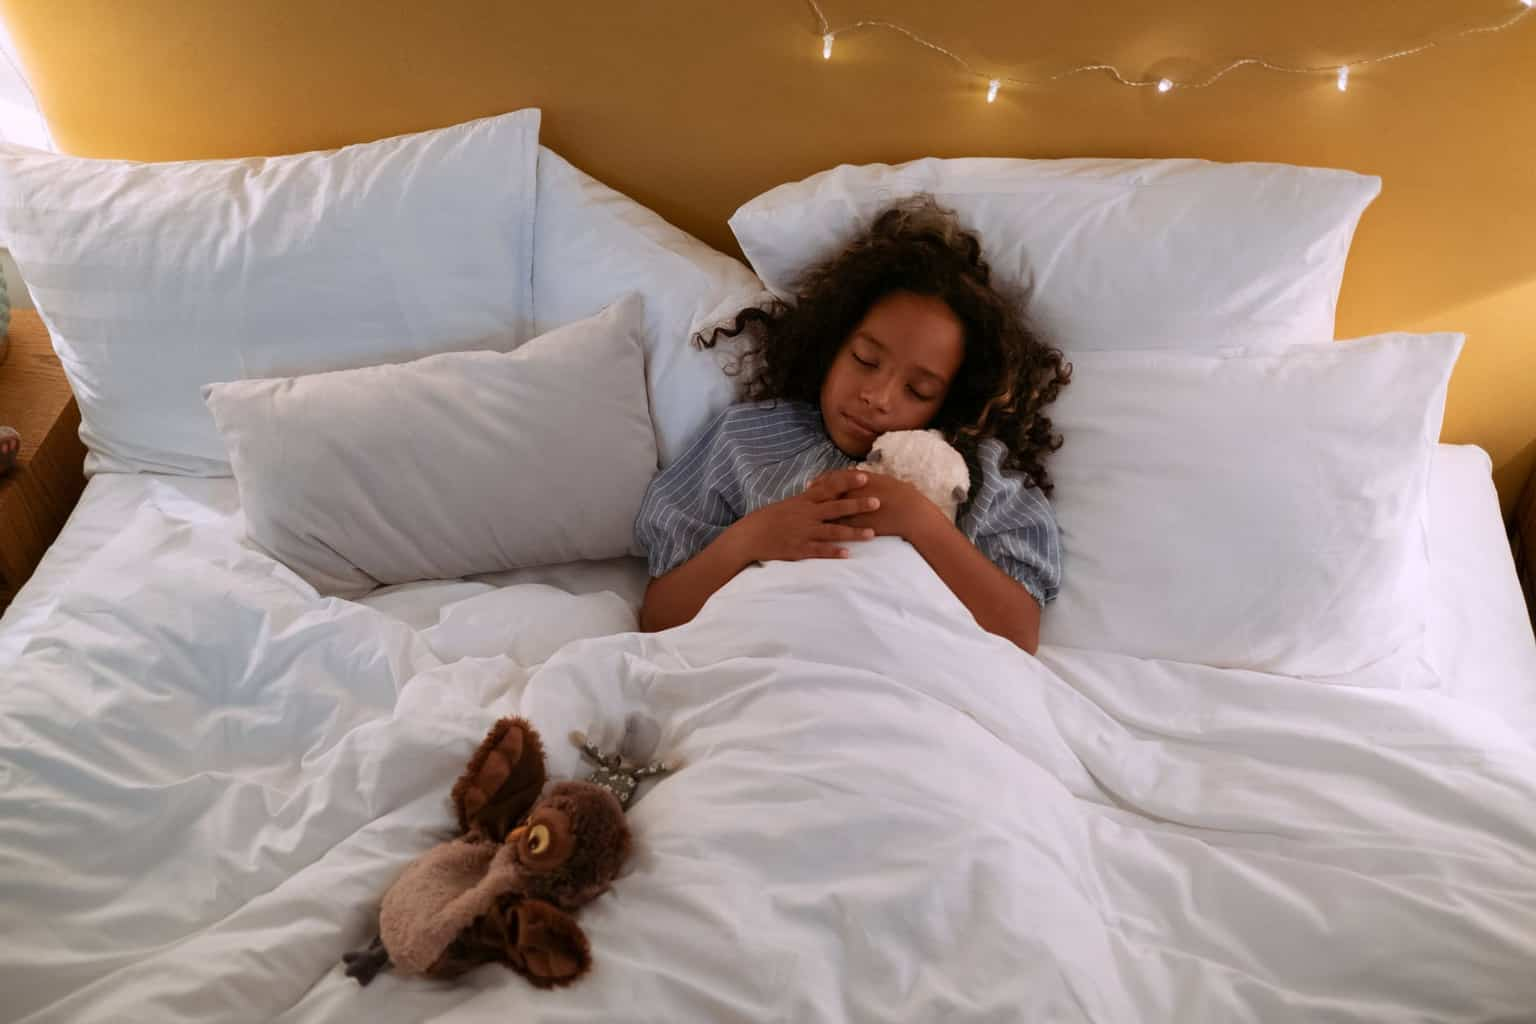 6 Things to Know About Melatonin for Kids